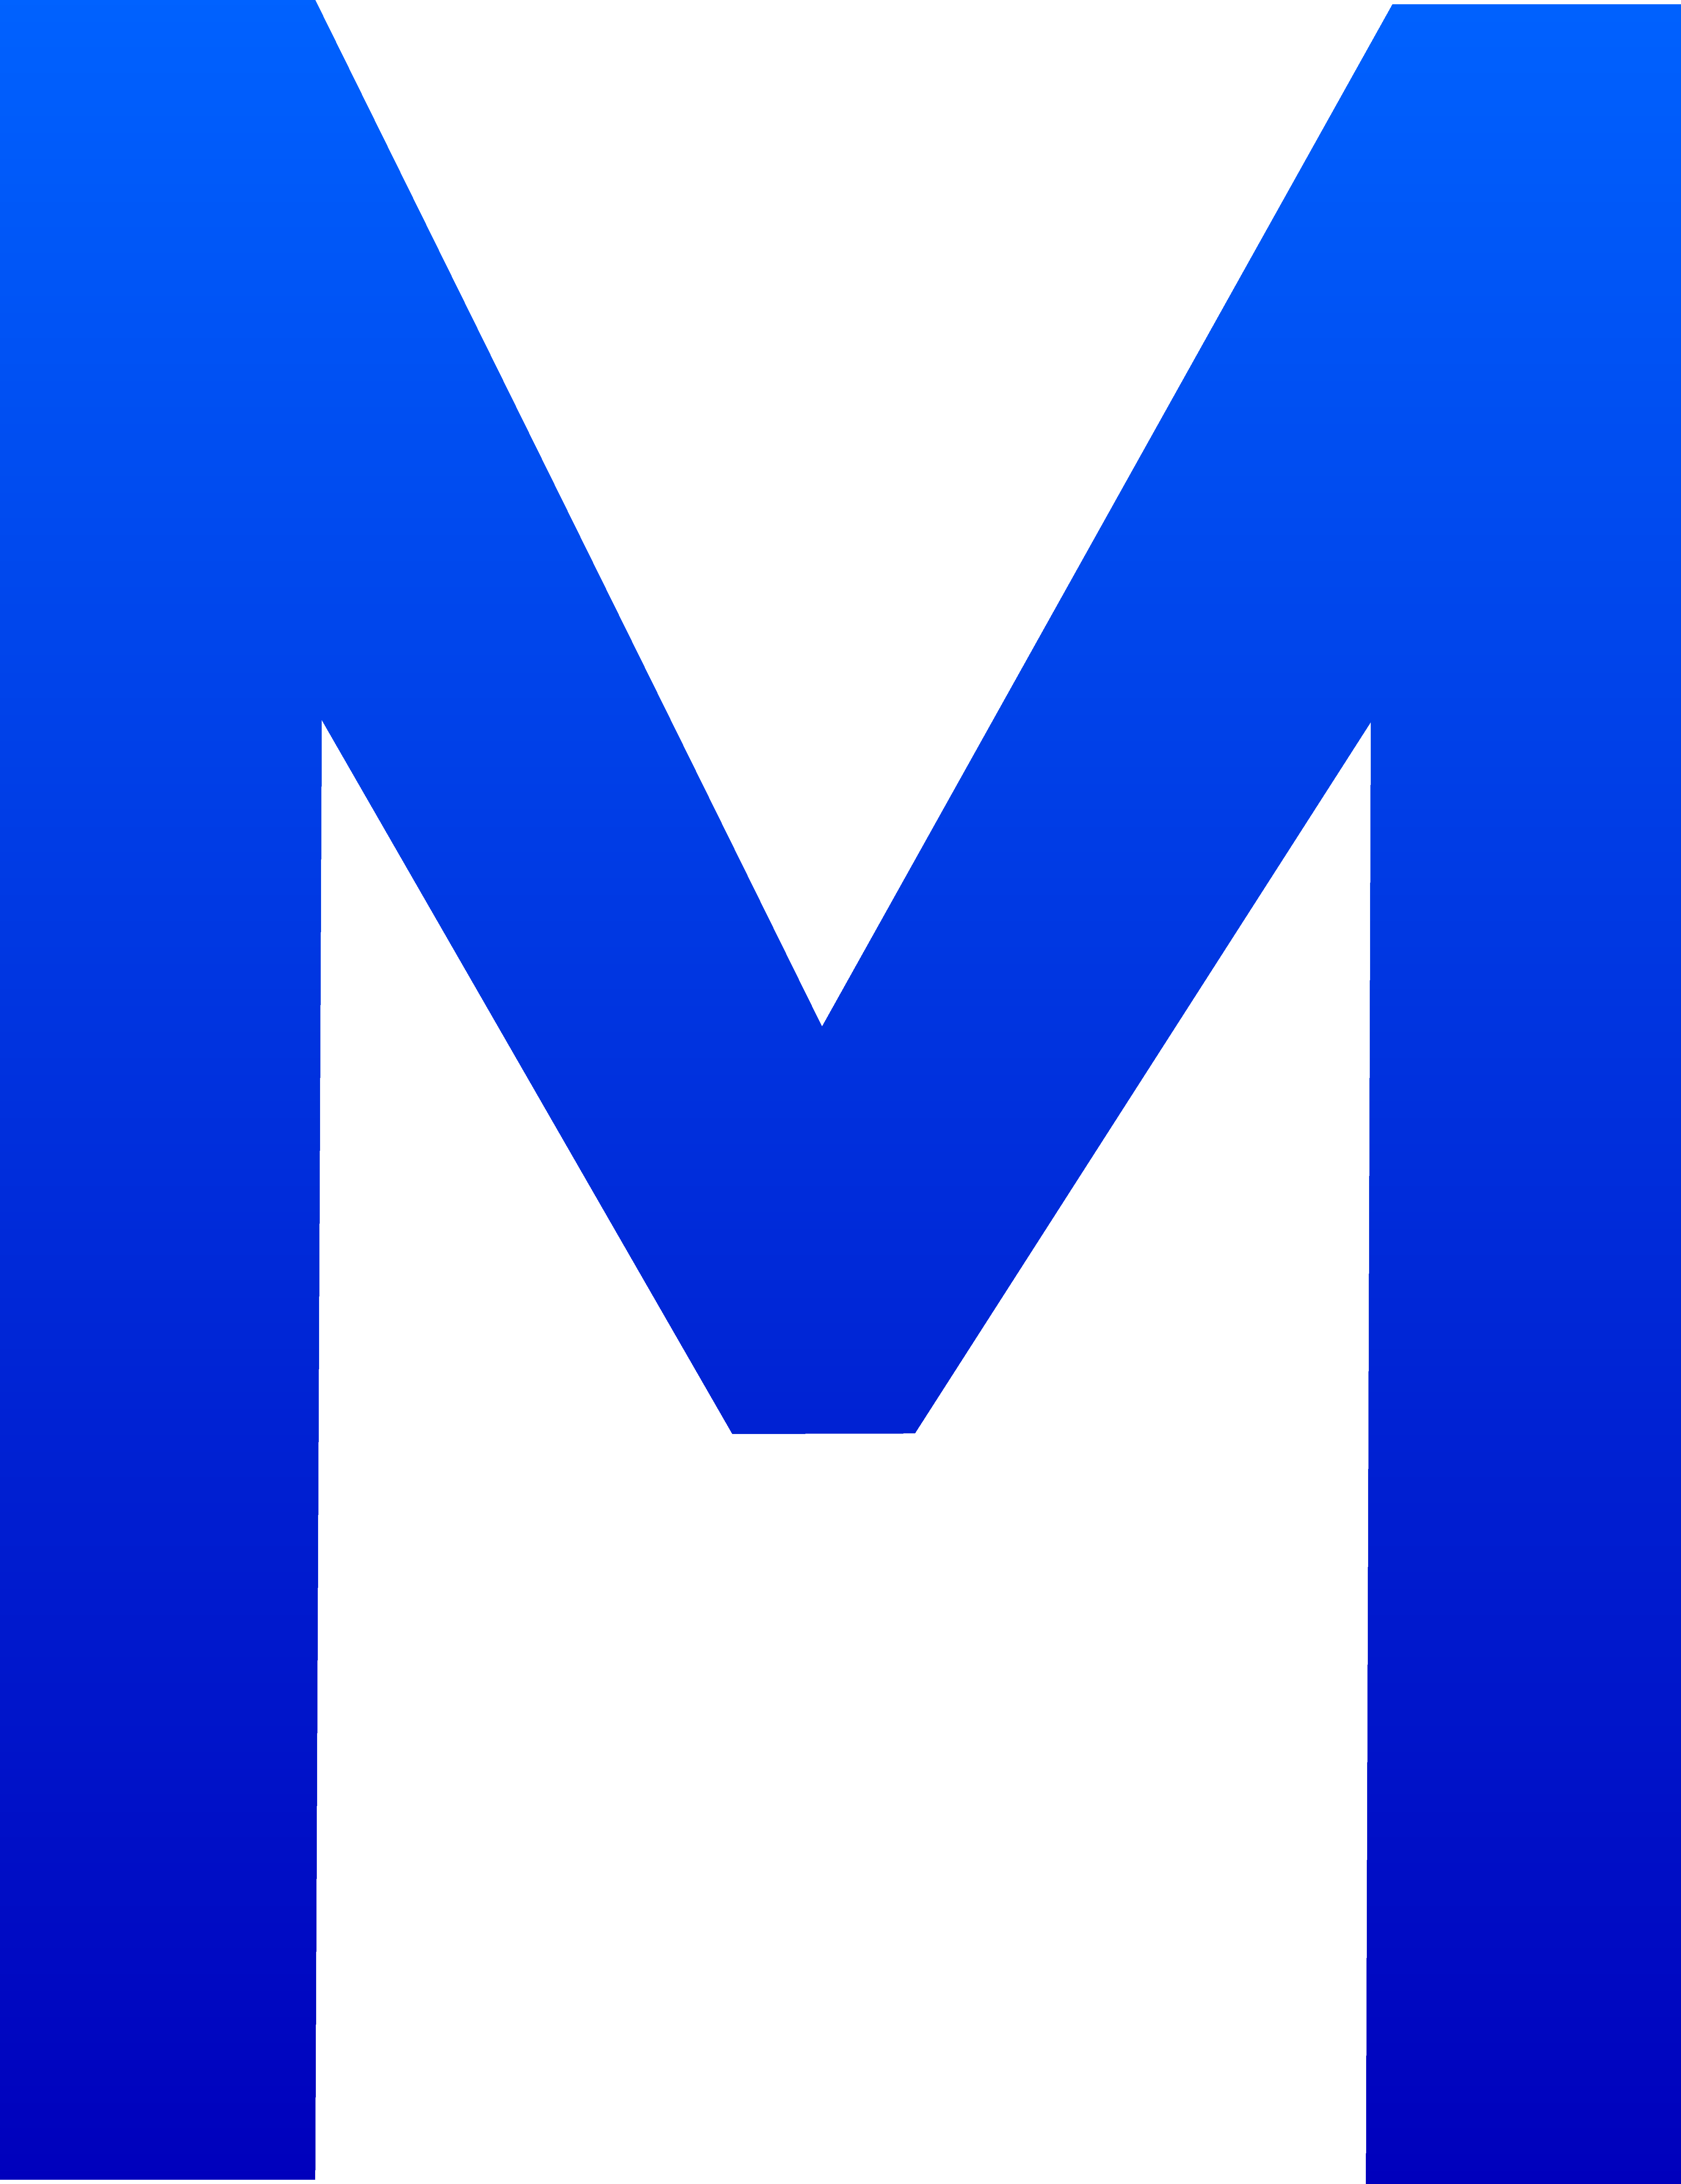 Clipart Of Letter M.